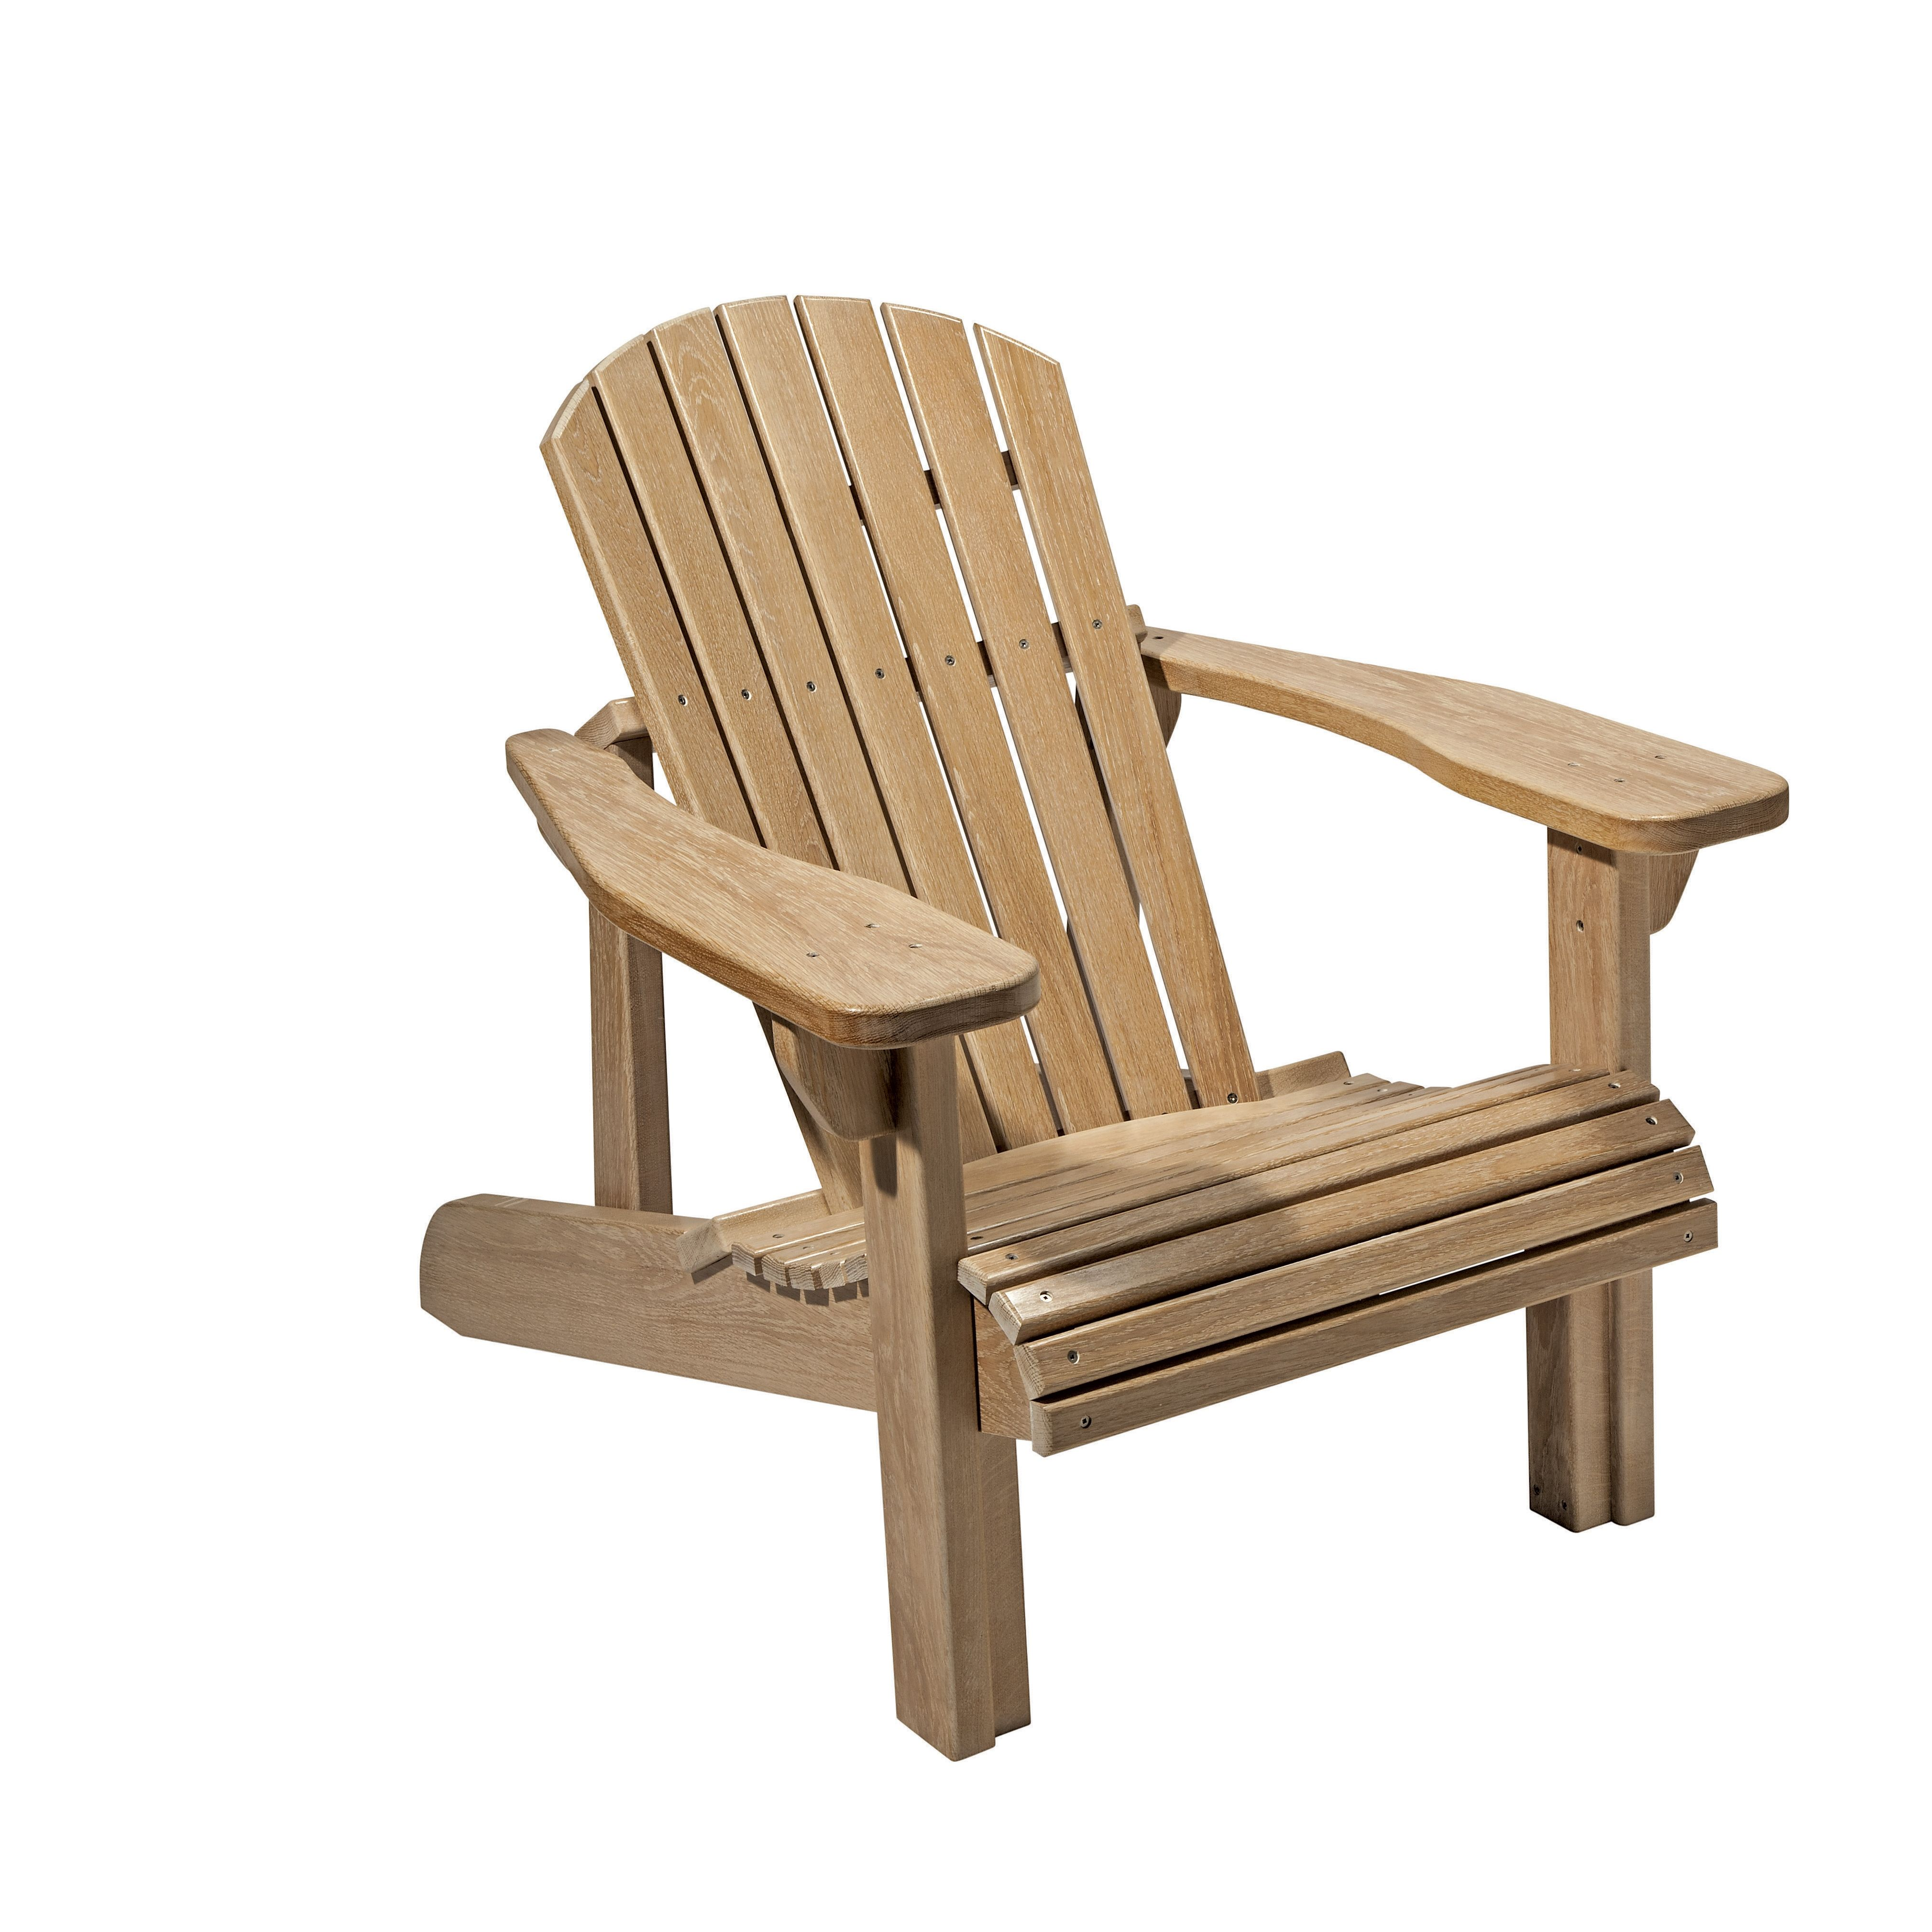 Adirondack Chair Template Adirondack Chair Templates With Plan And Stainless Steel